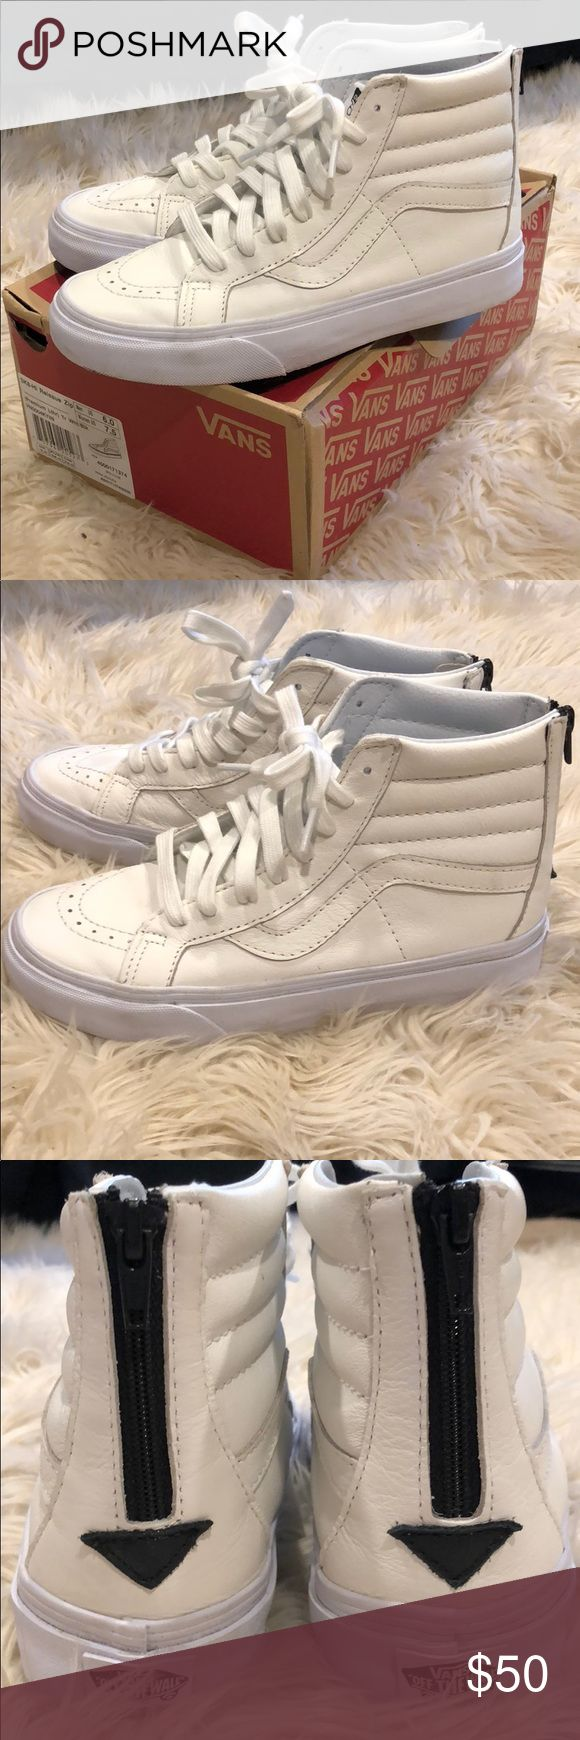 White Leather Vans Amazing condition white leather vans worn once! Size 7.5 fit true to size. Come with original box. Smoke free home. Open to offers! Vans Shoes Sneakers